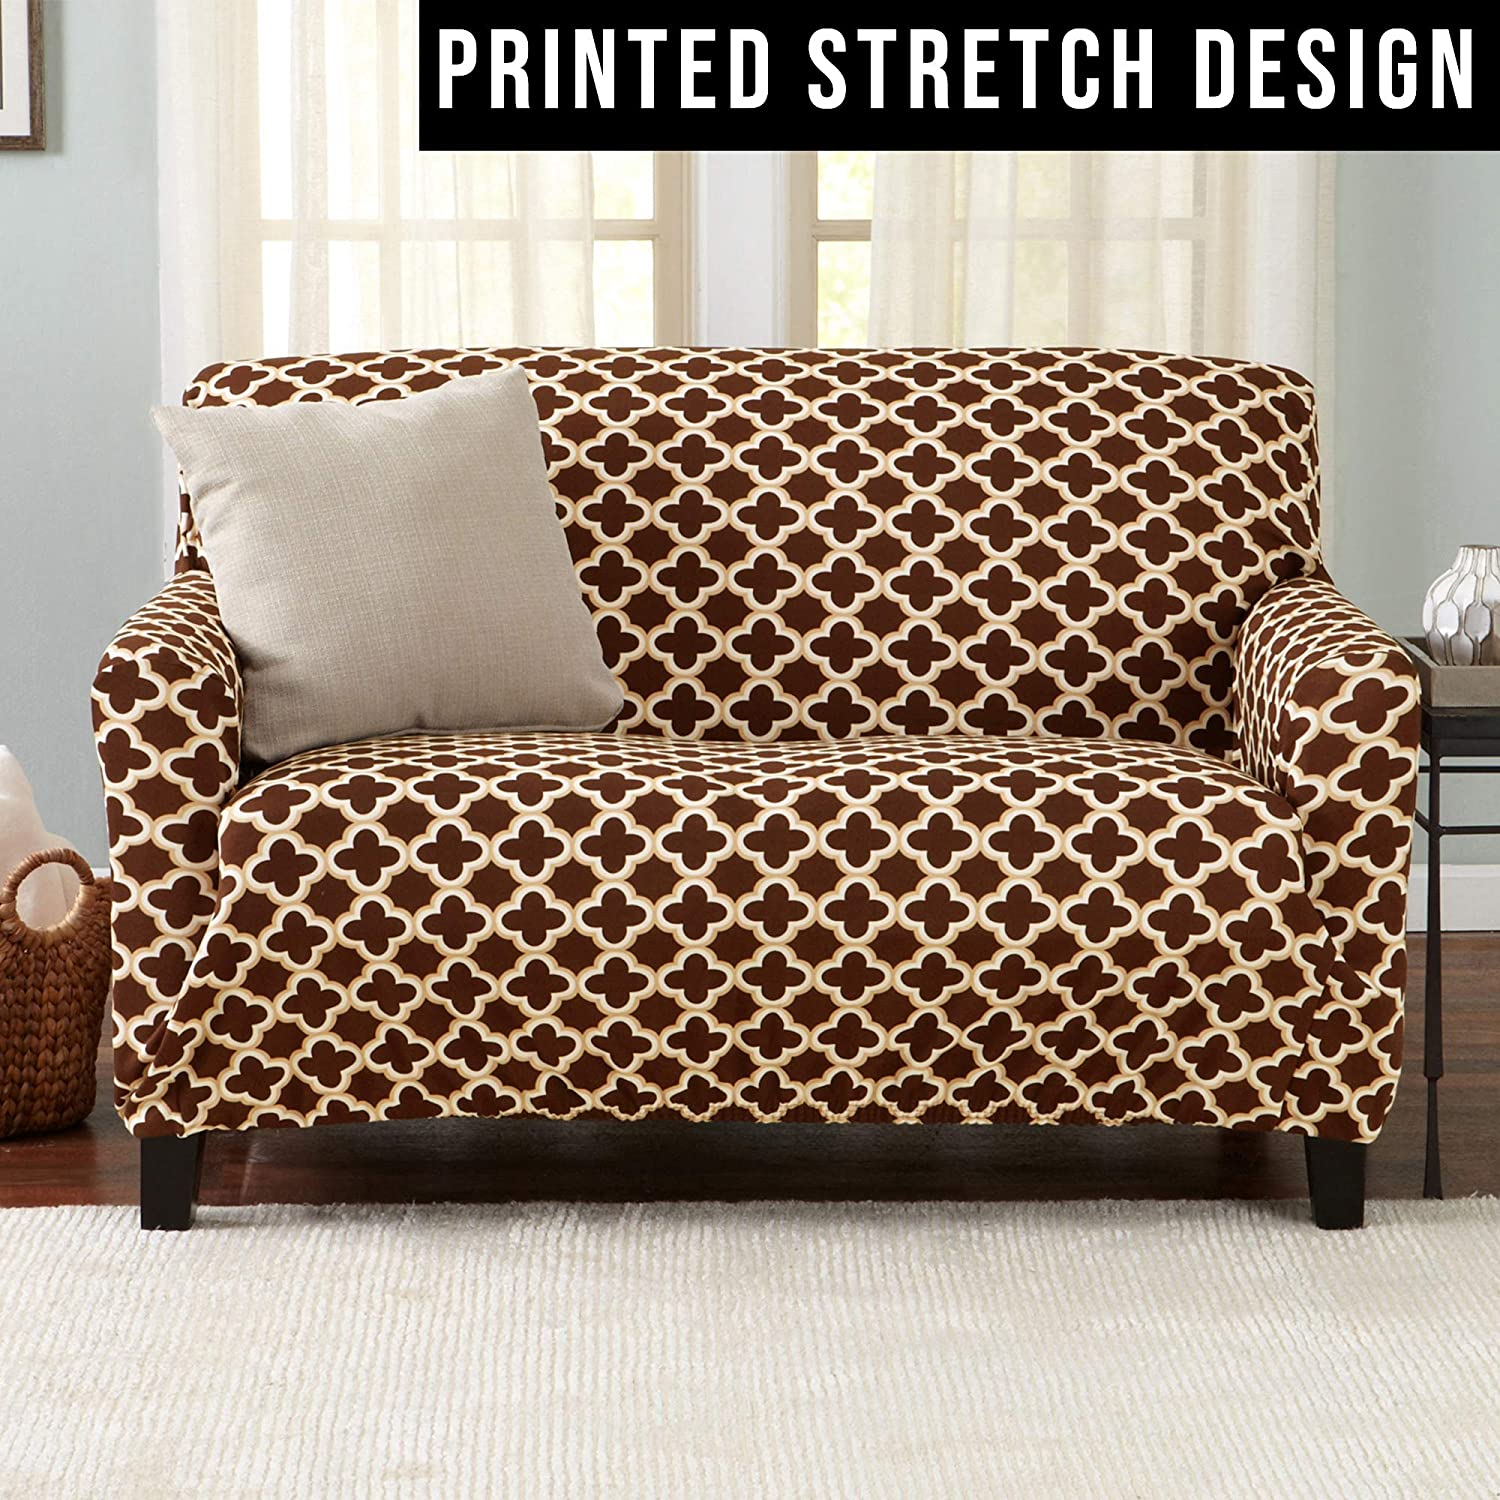 Brenna Collection Slipcover./ Strapless Love Seat Cover for Living Room Love Seat, Smoke Blue Home Fashion Designs Printed Twill Love Seat Slipcover One Piece Stretch Loveseat Cover